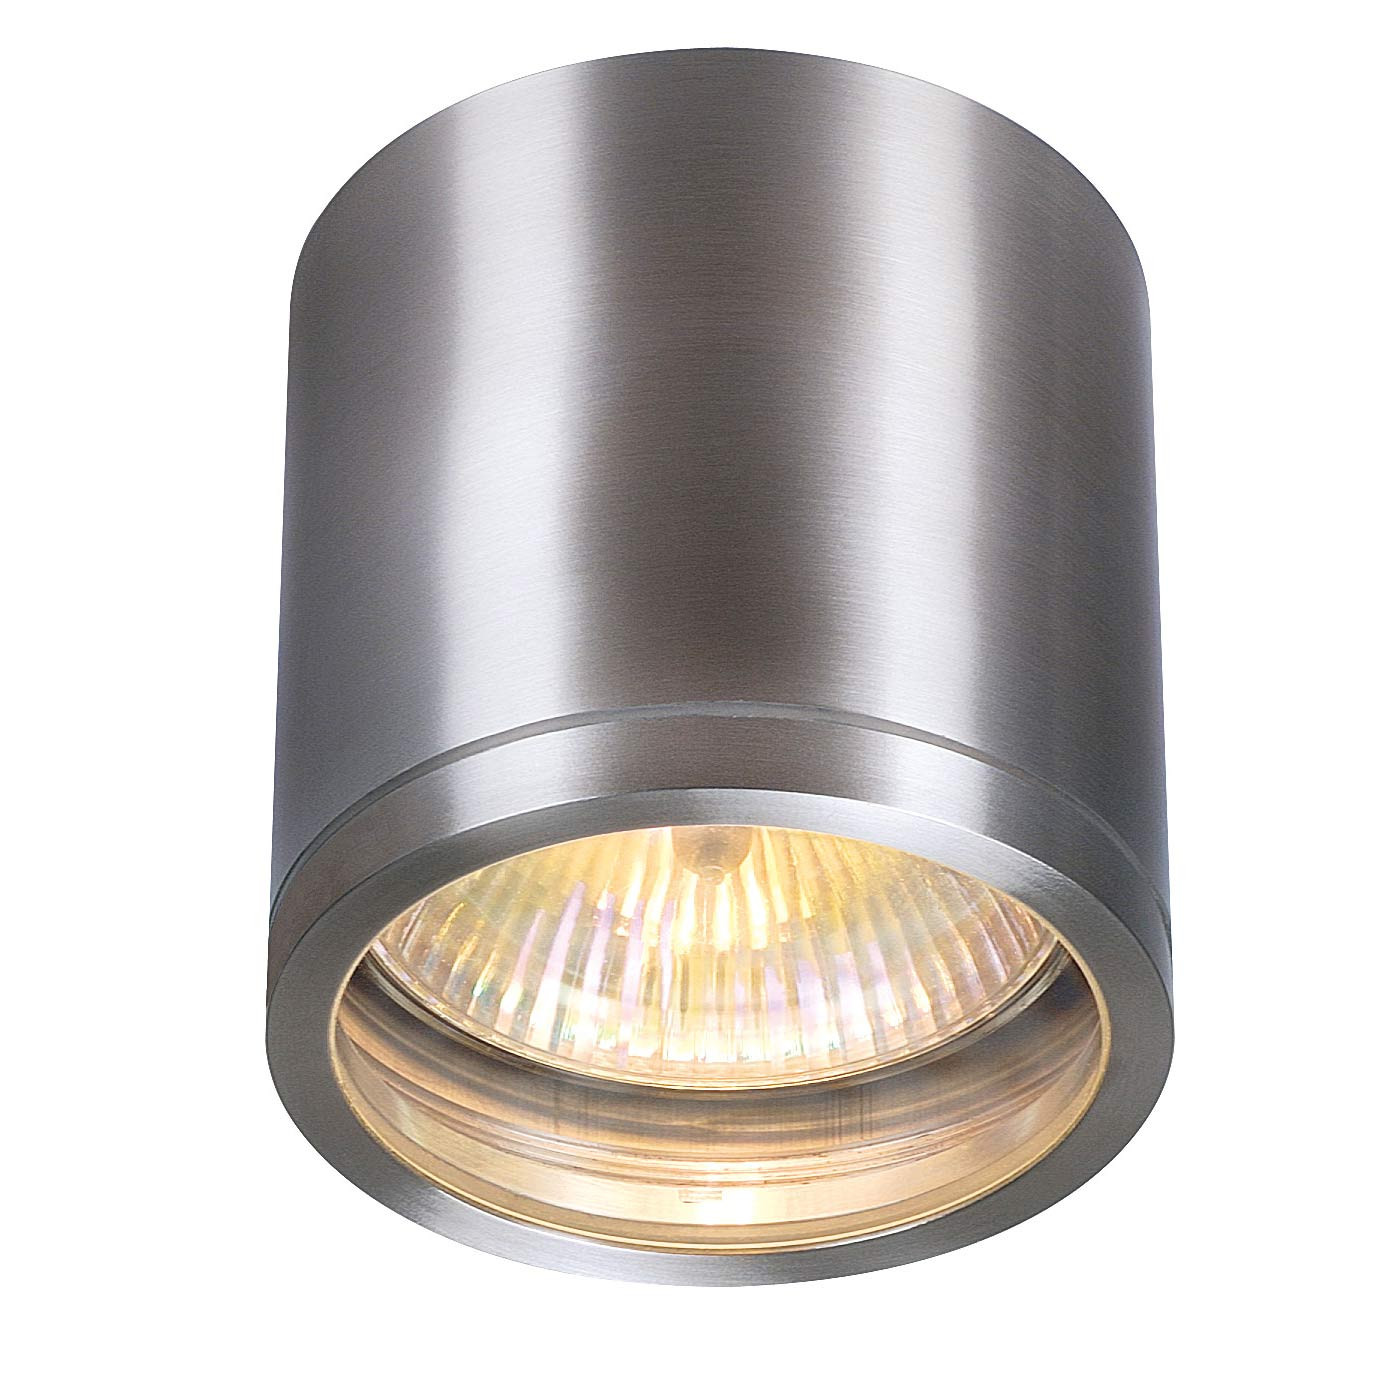 SLV Rox Ceiling Out ceiling lamp